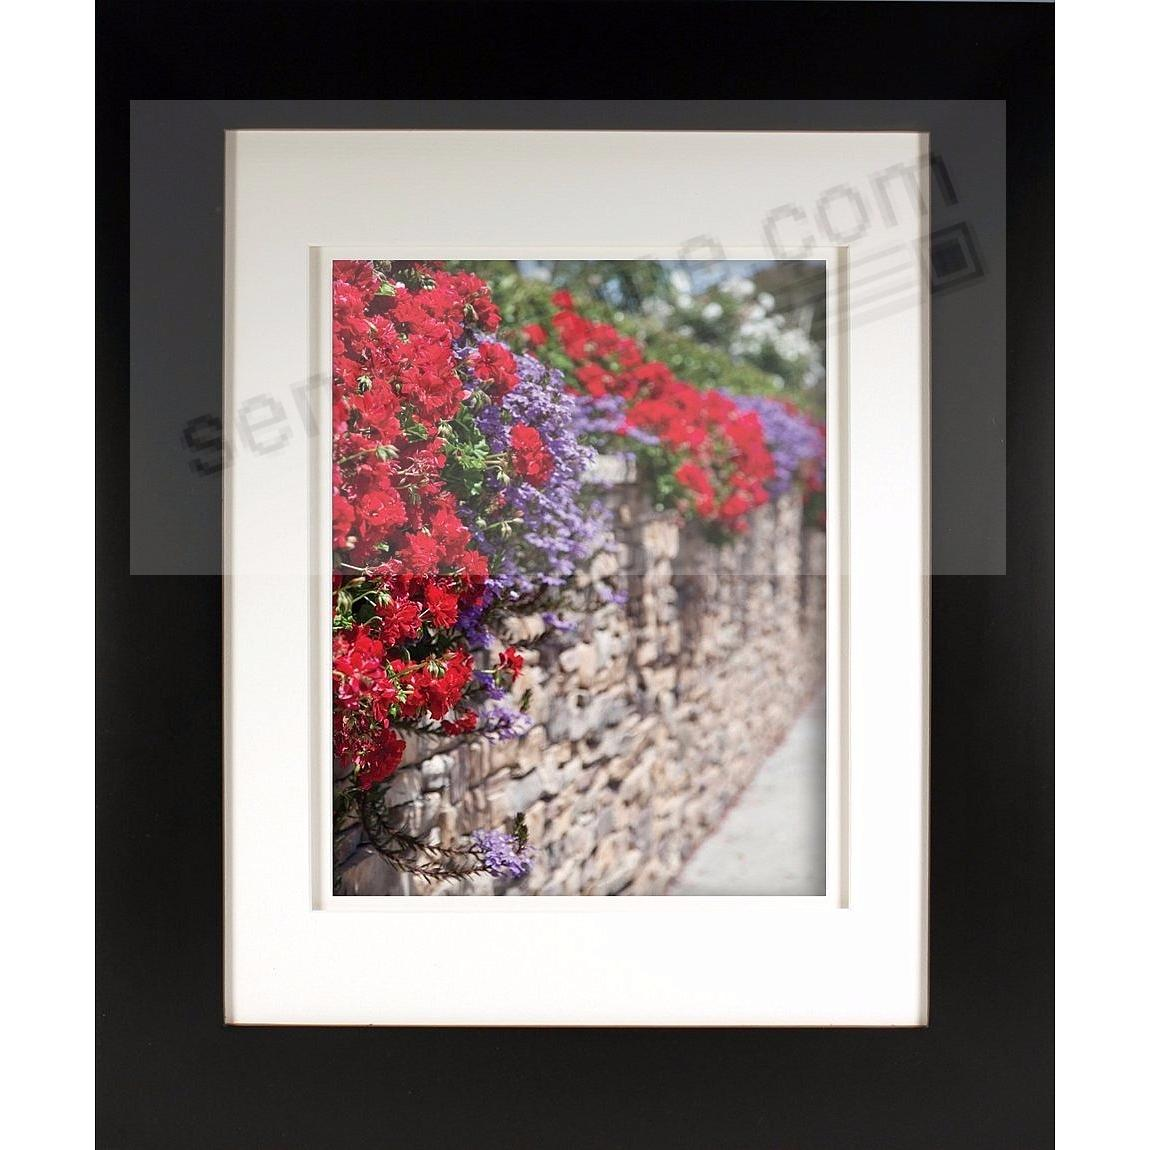 Matte-Black MESA Wood frame matted 8x10/5x7 from ARTCARE® by Nielsen®